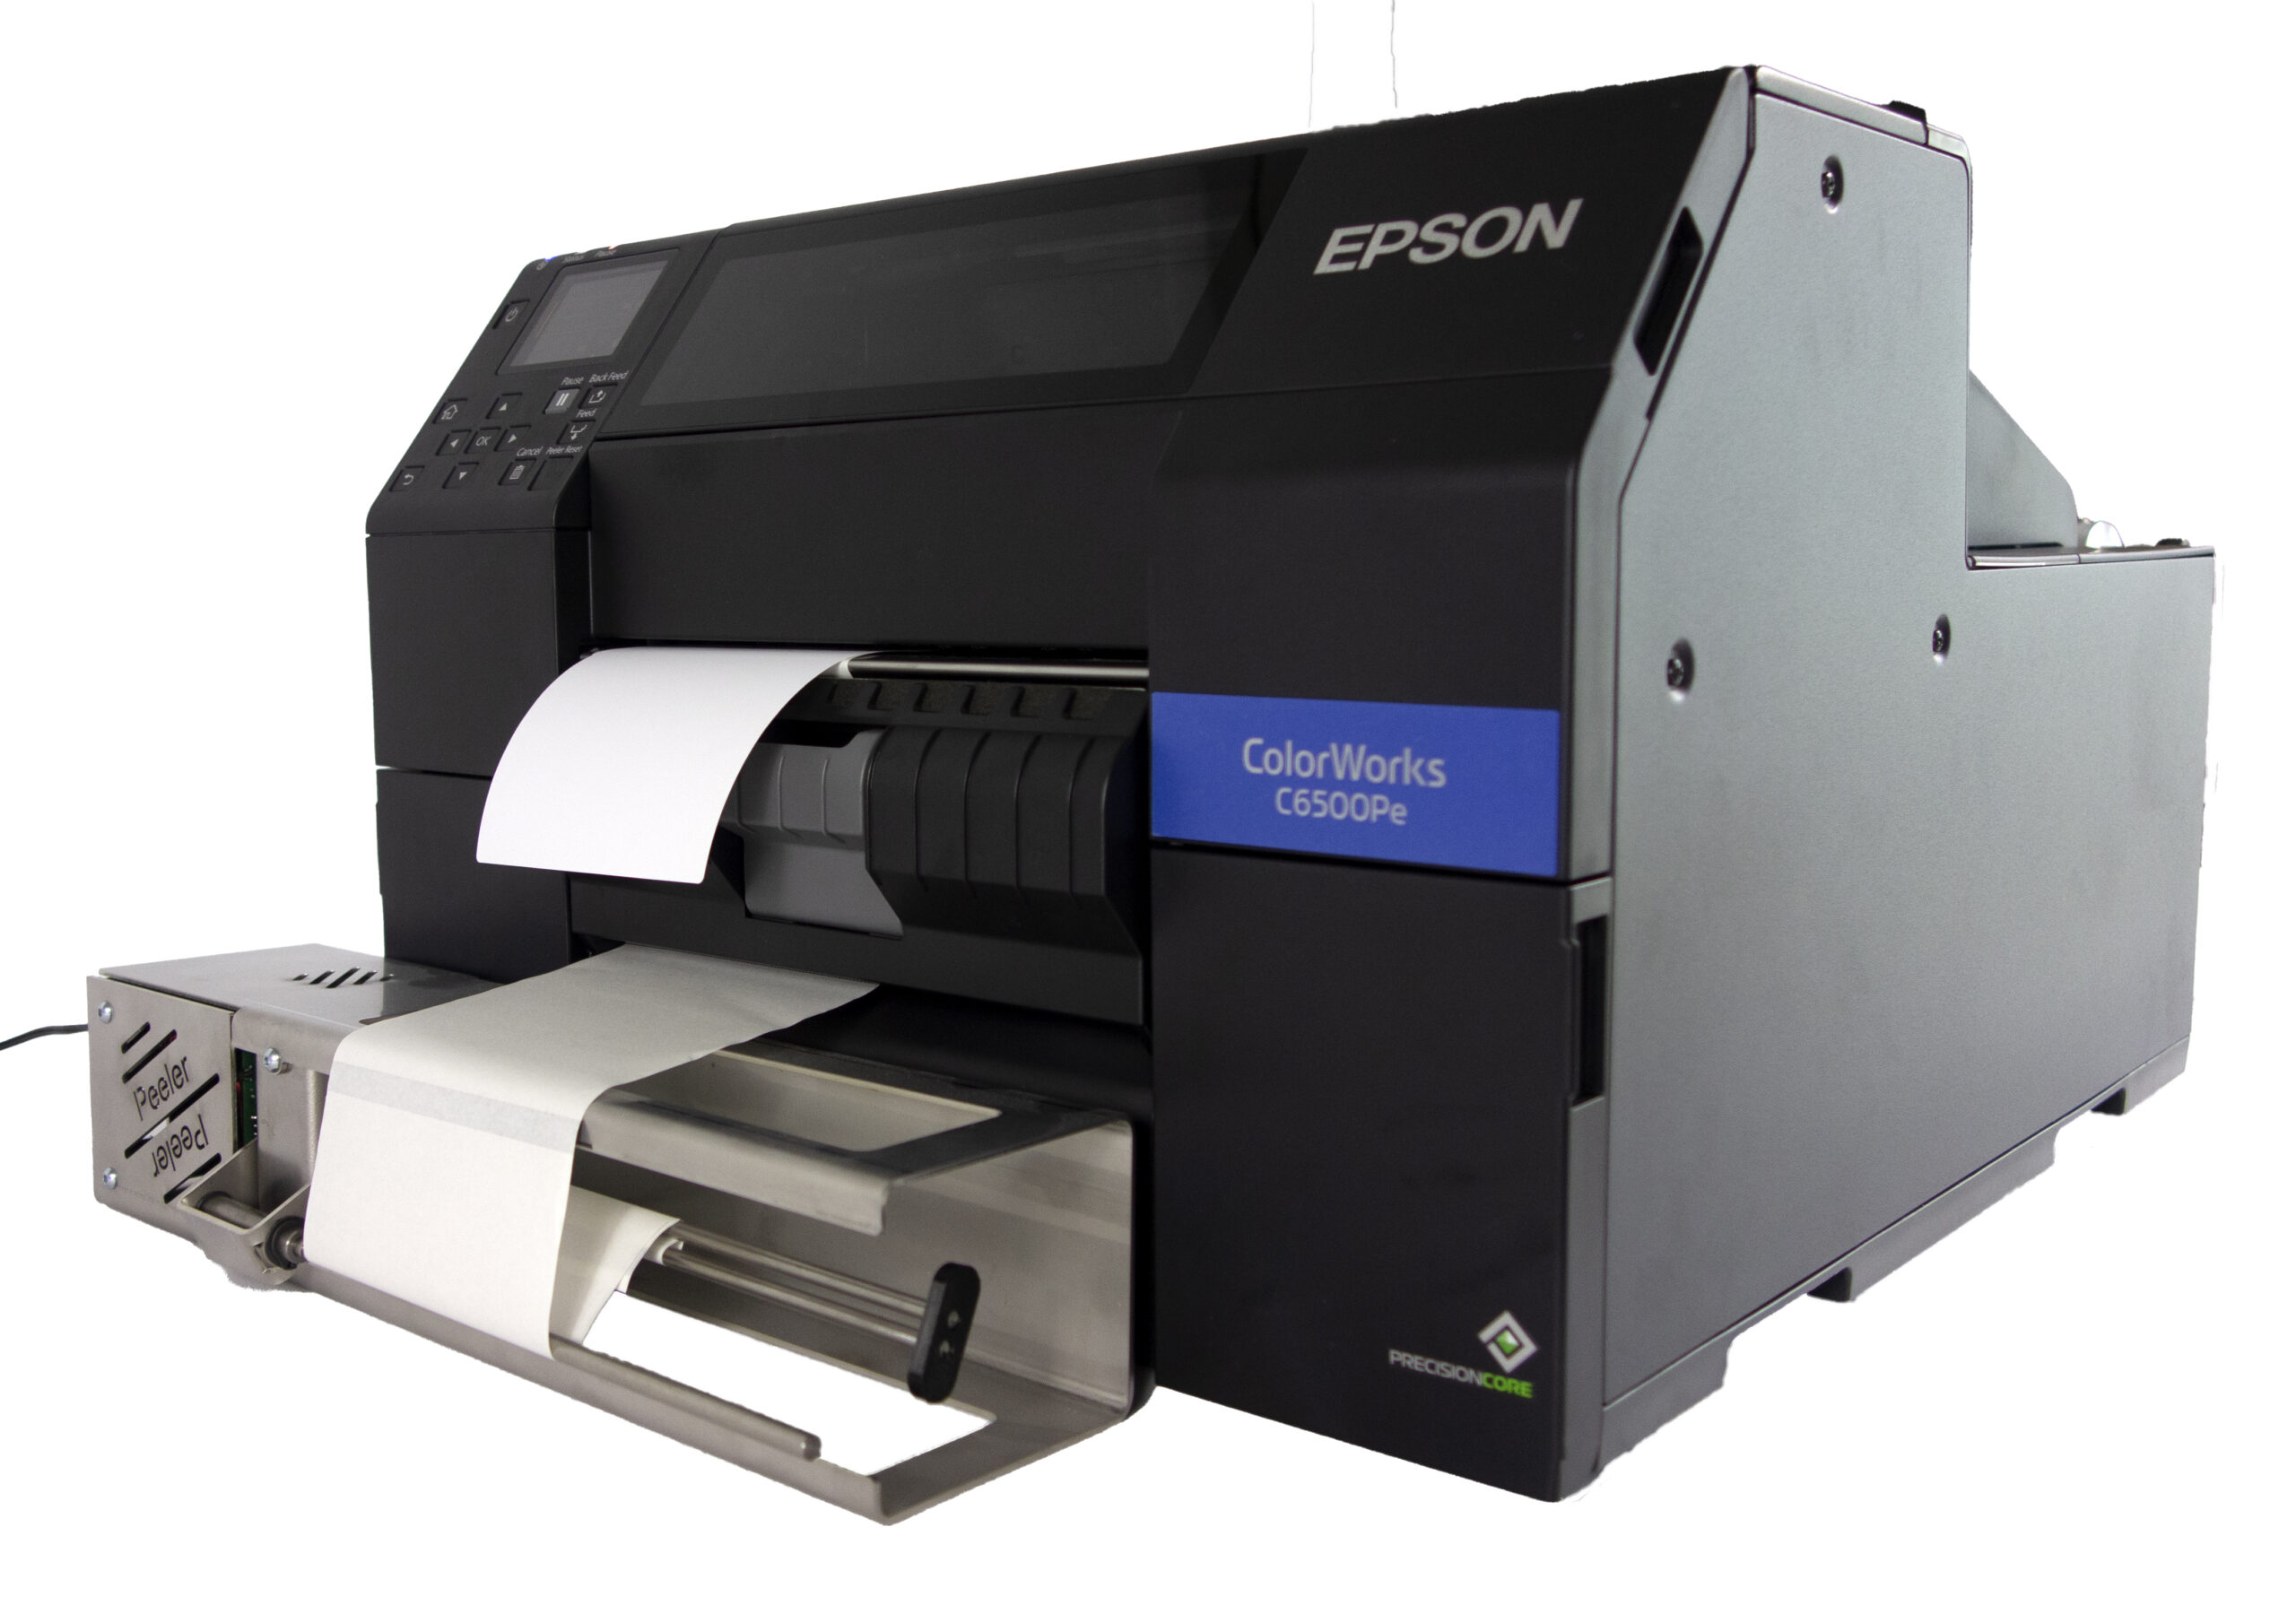 Peel-off Rewinder for Epson C6500 series